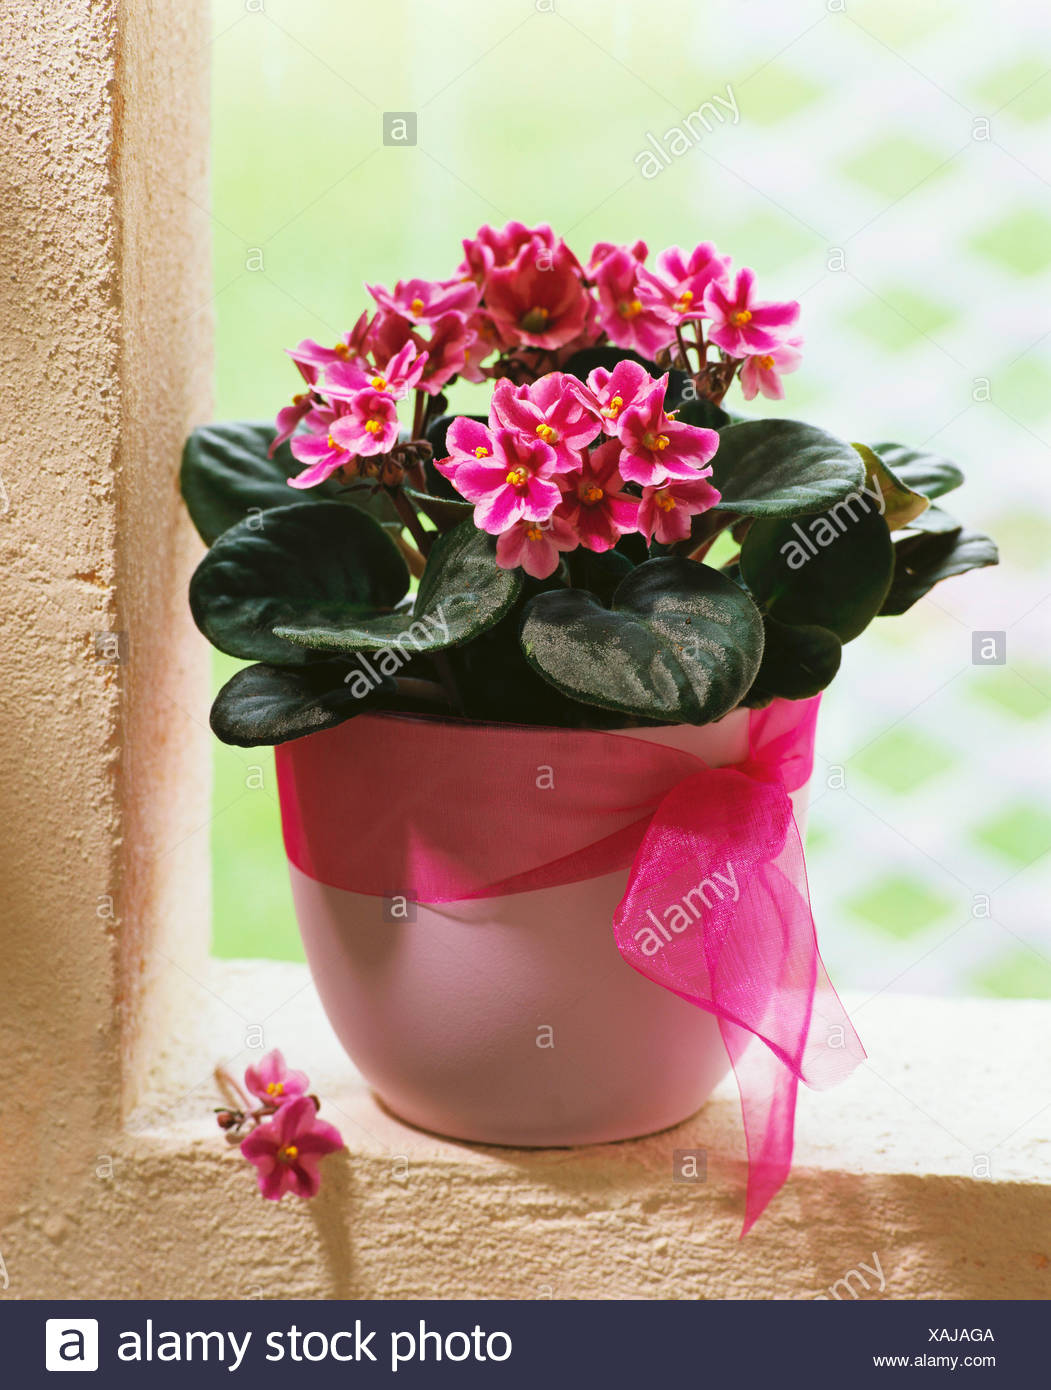 Pink African violets in cache-pot Stock Photo: 281915882 - Alamy